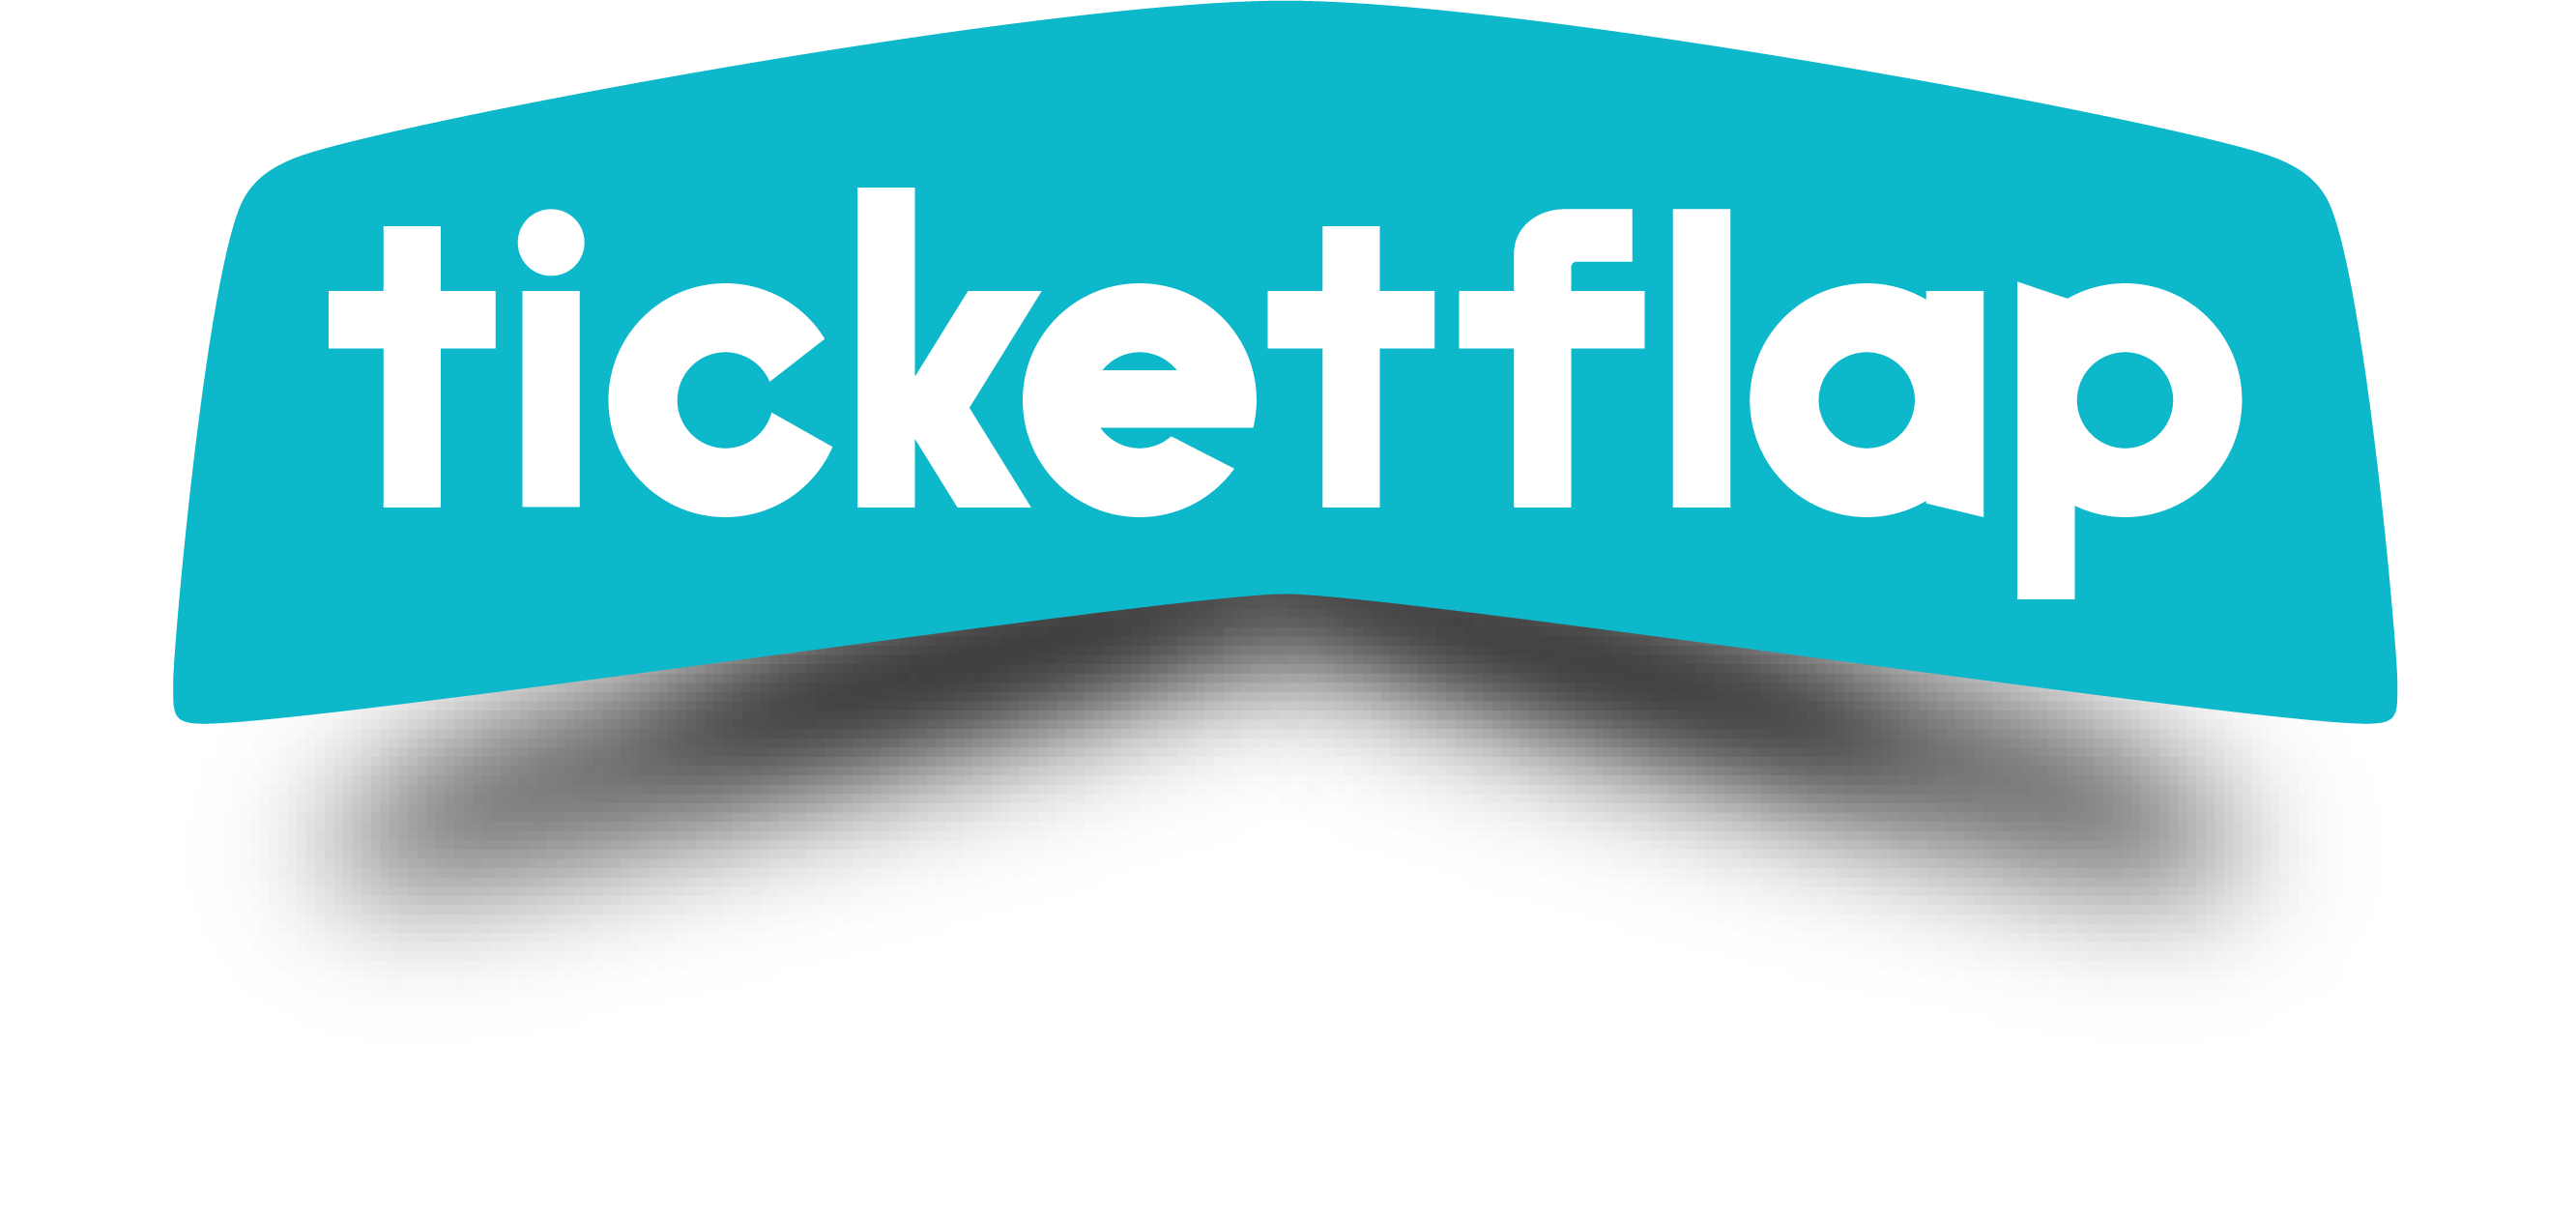 Ticketflap logo